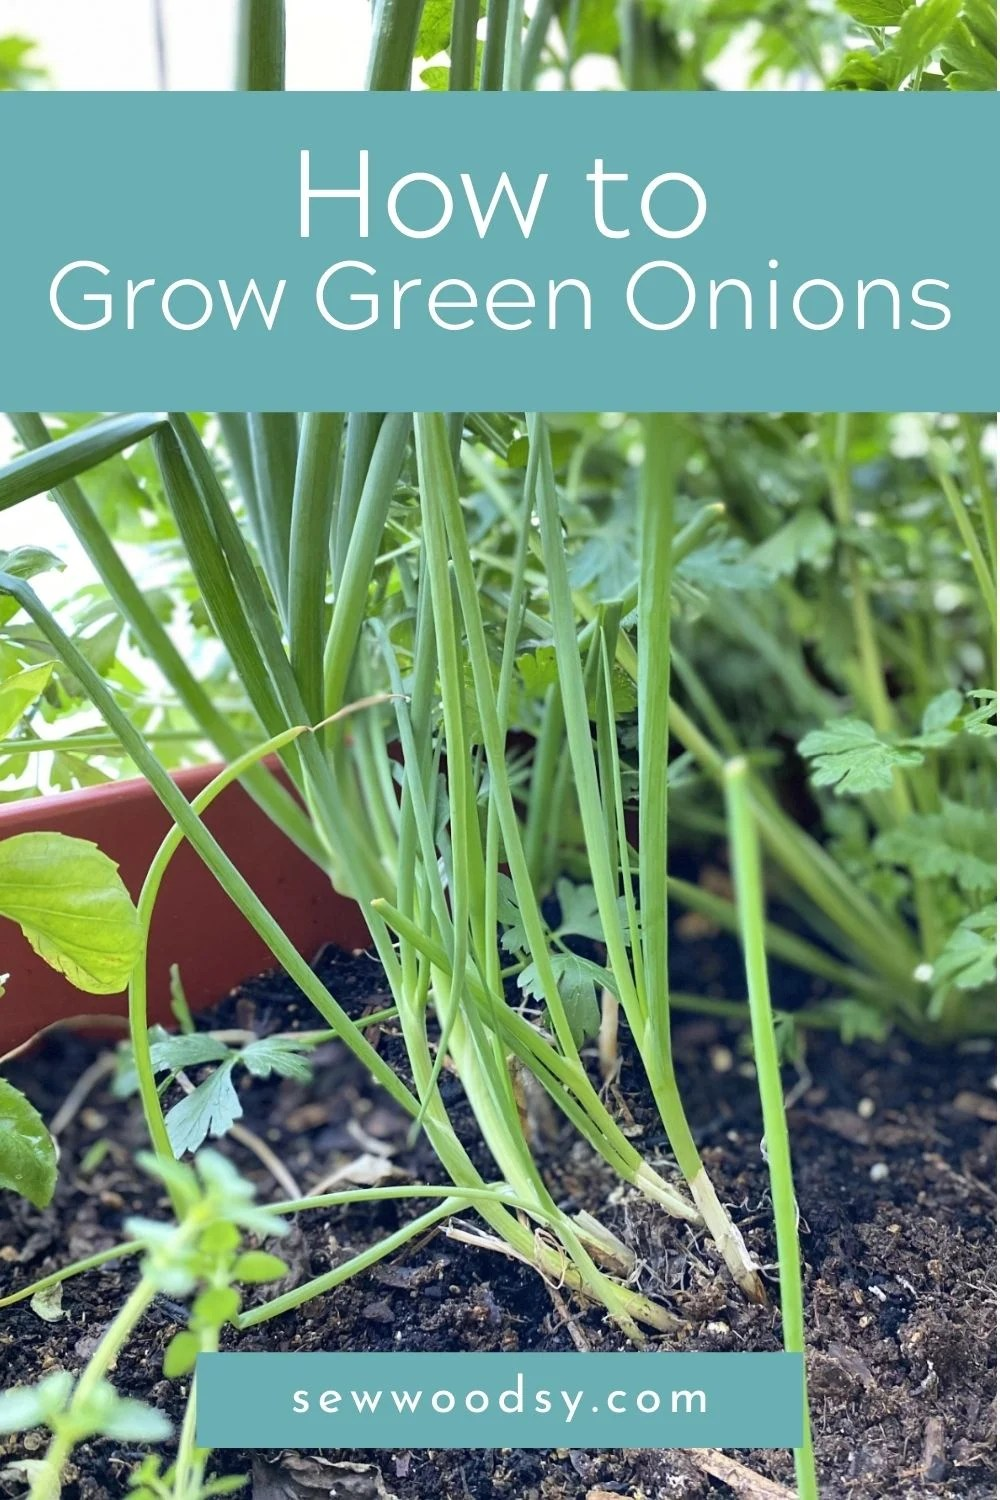 A bundle of green onions growing in dirt in a garden with text on image for Pinterest.